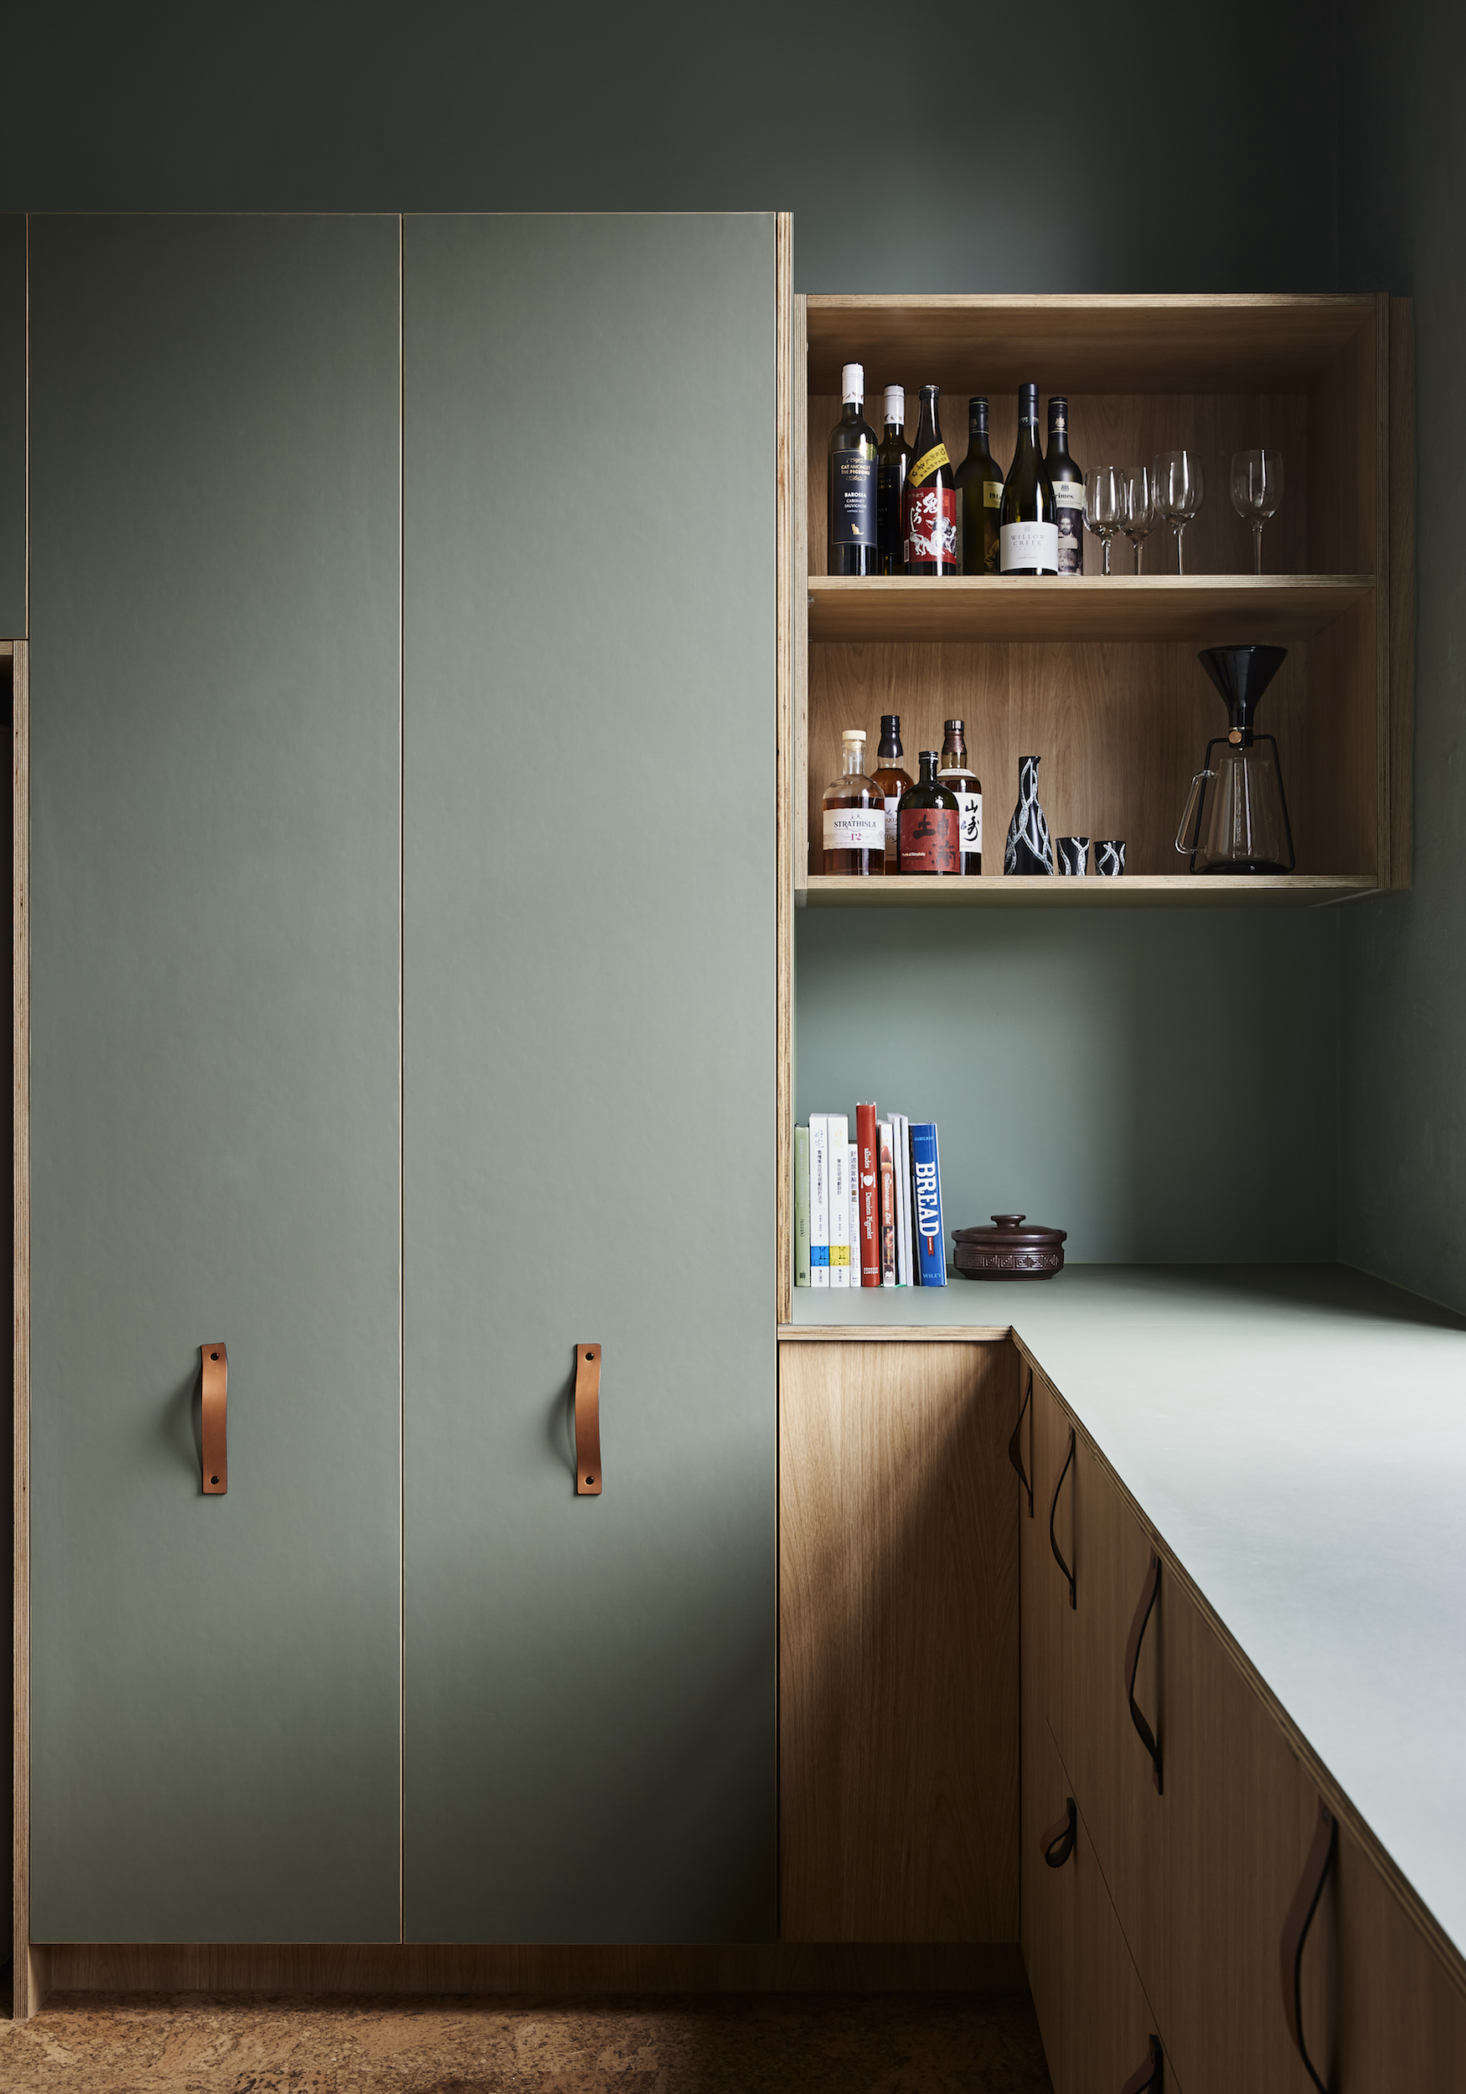 The kitchen cabinets were custom-made by MTR Designer Cabinets using Laminex boards in Elegant Natural Oak finish. The pantry features doors fronted with with green panels of furniture linoleum by Forbo. The same linoleum was used to top the -mm birch plywood countertop as well.